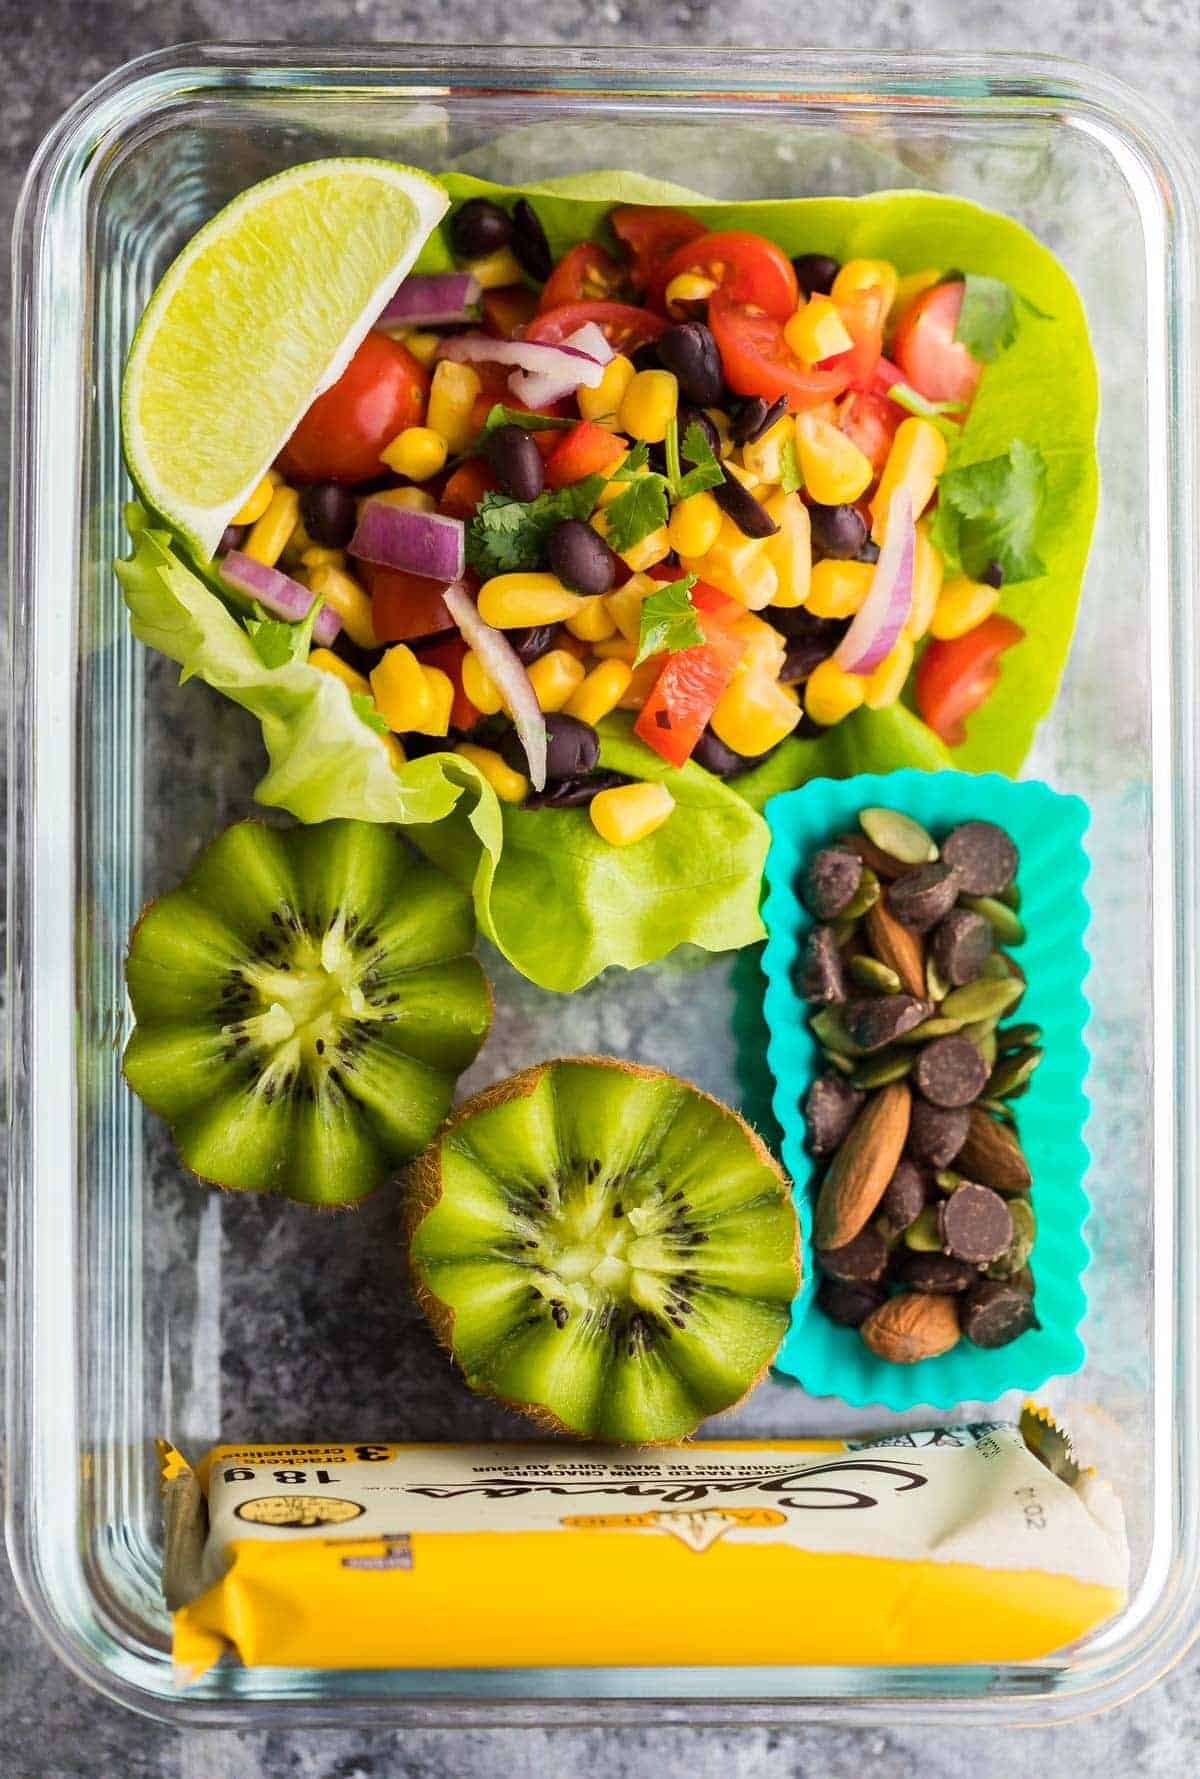 Easy Bistro Lunch Boxes 3 Ways